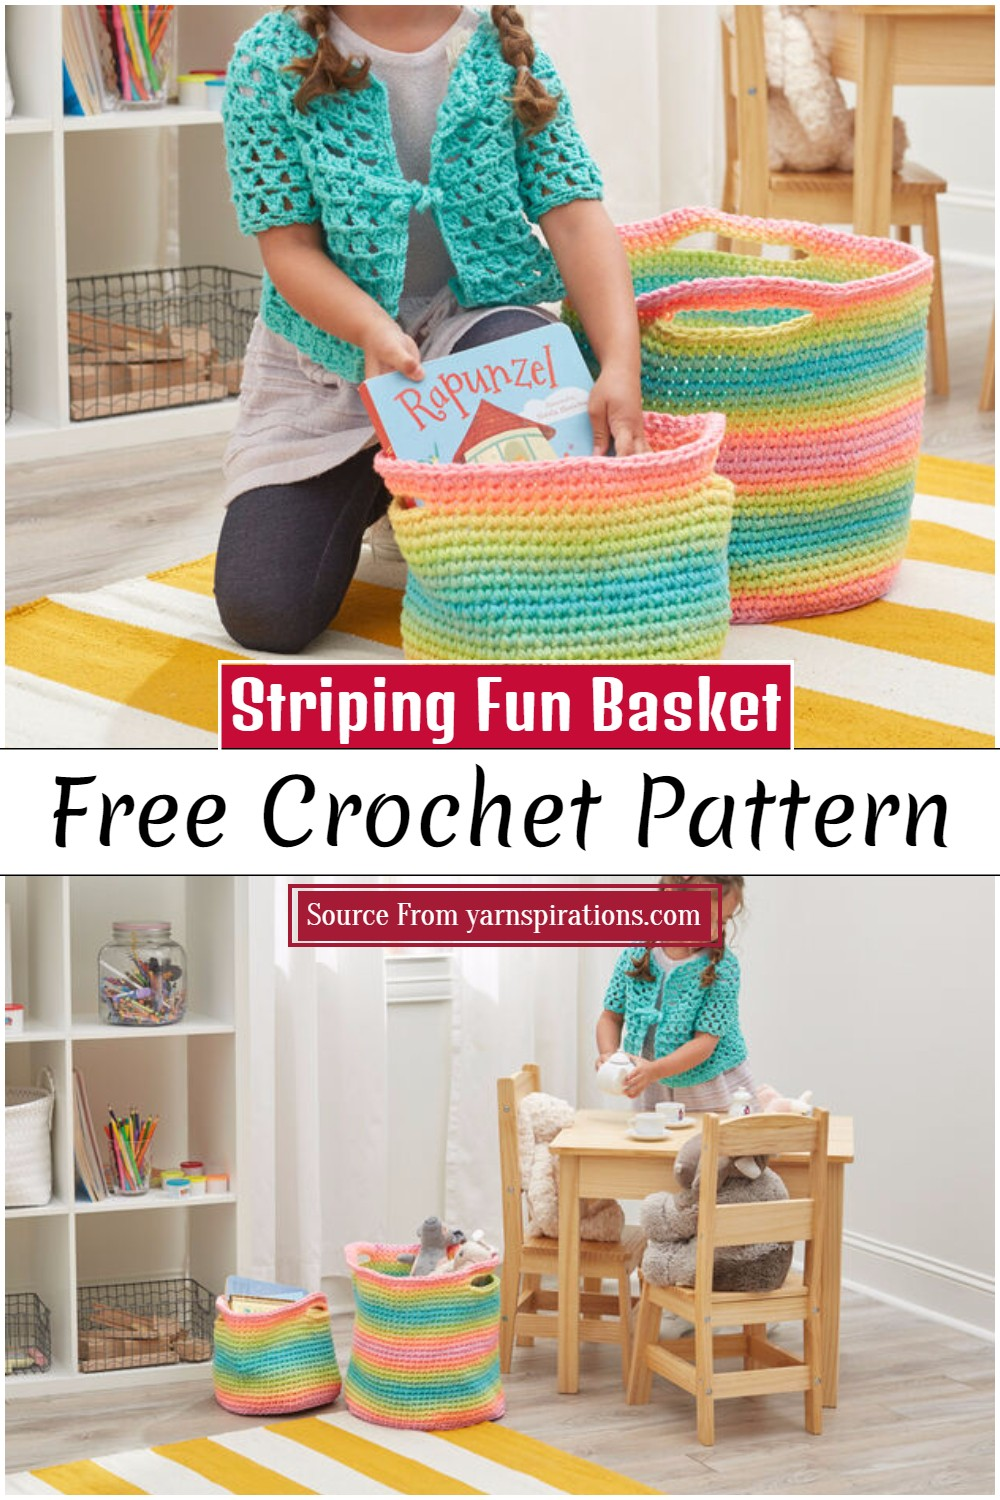 Free Crochet Striping Fun Basket Pattern